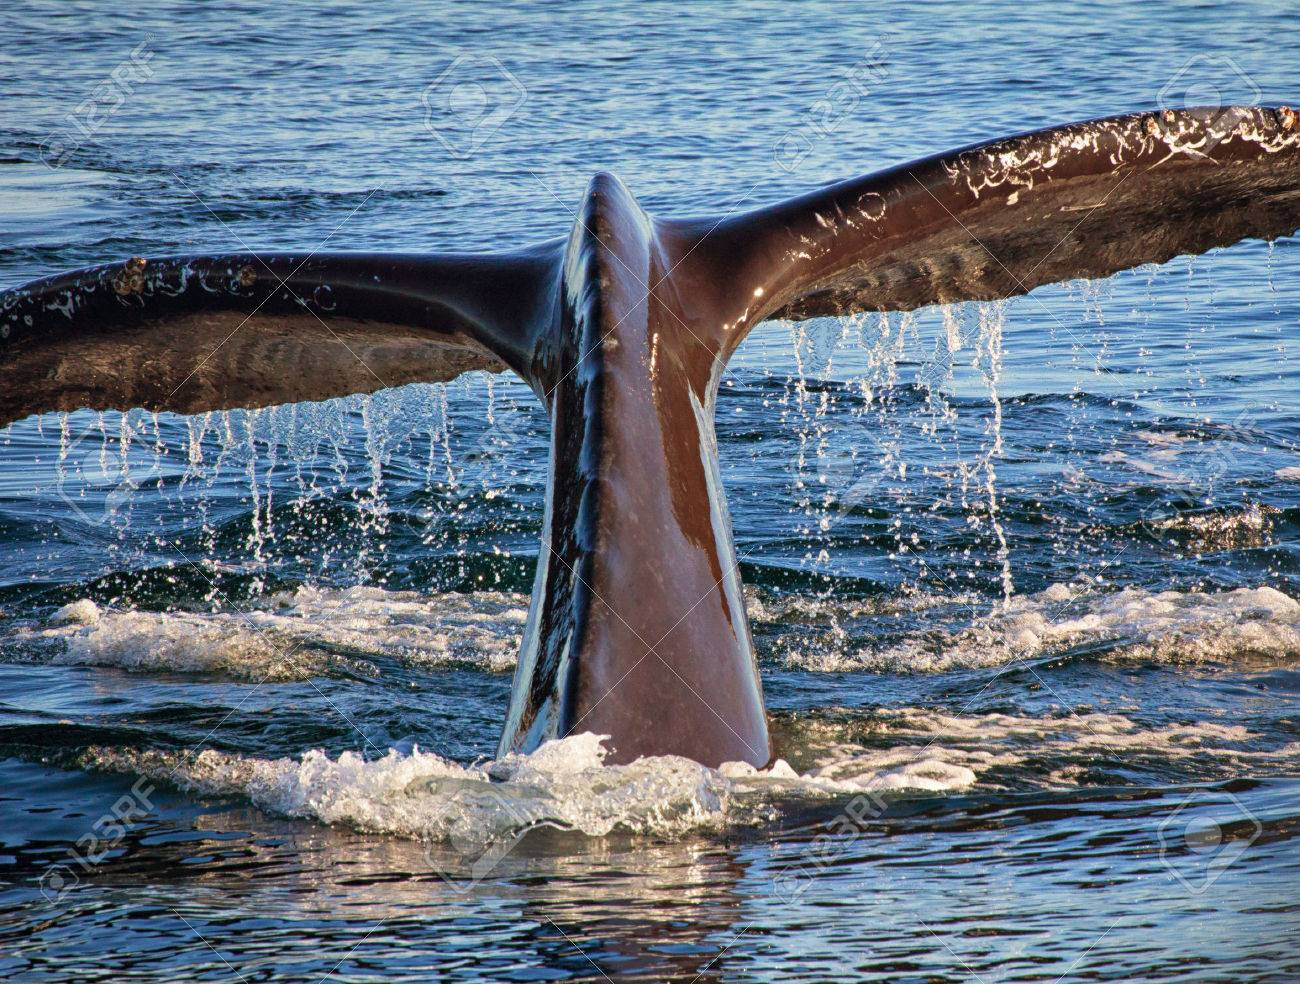 diving humpback whale in monterey bay california stock photo